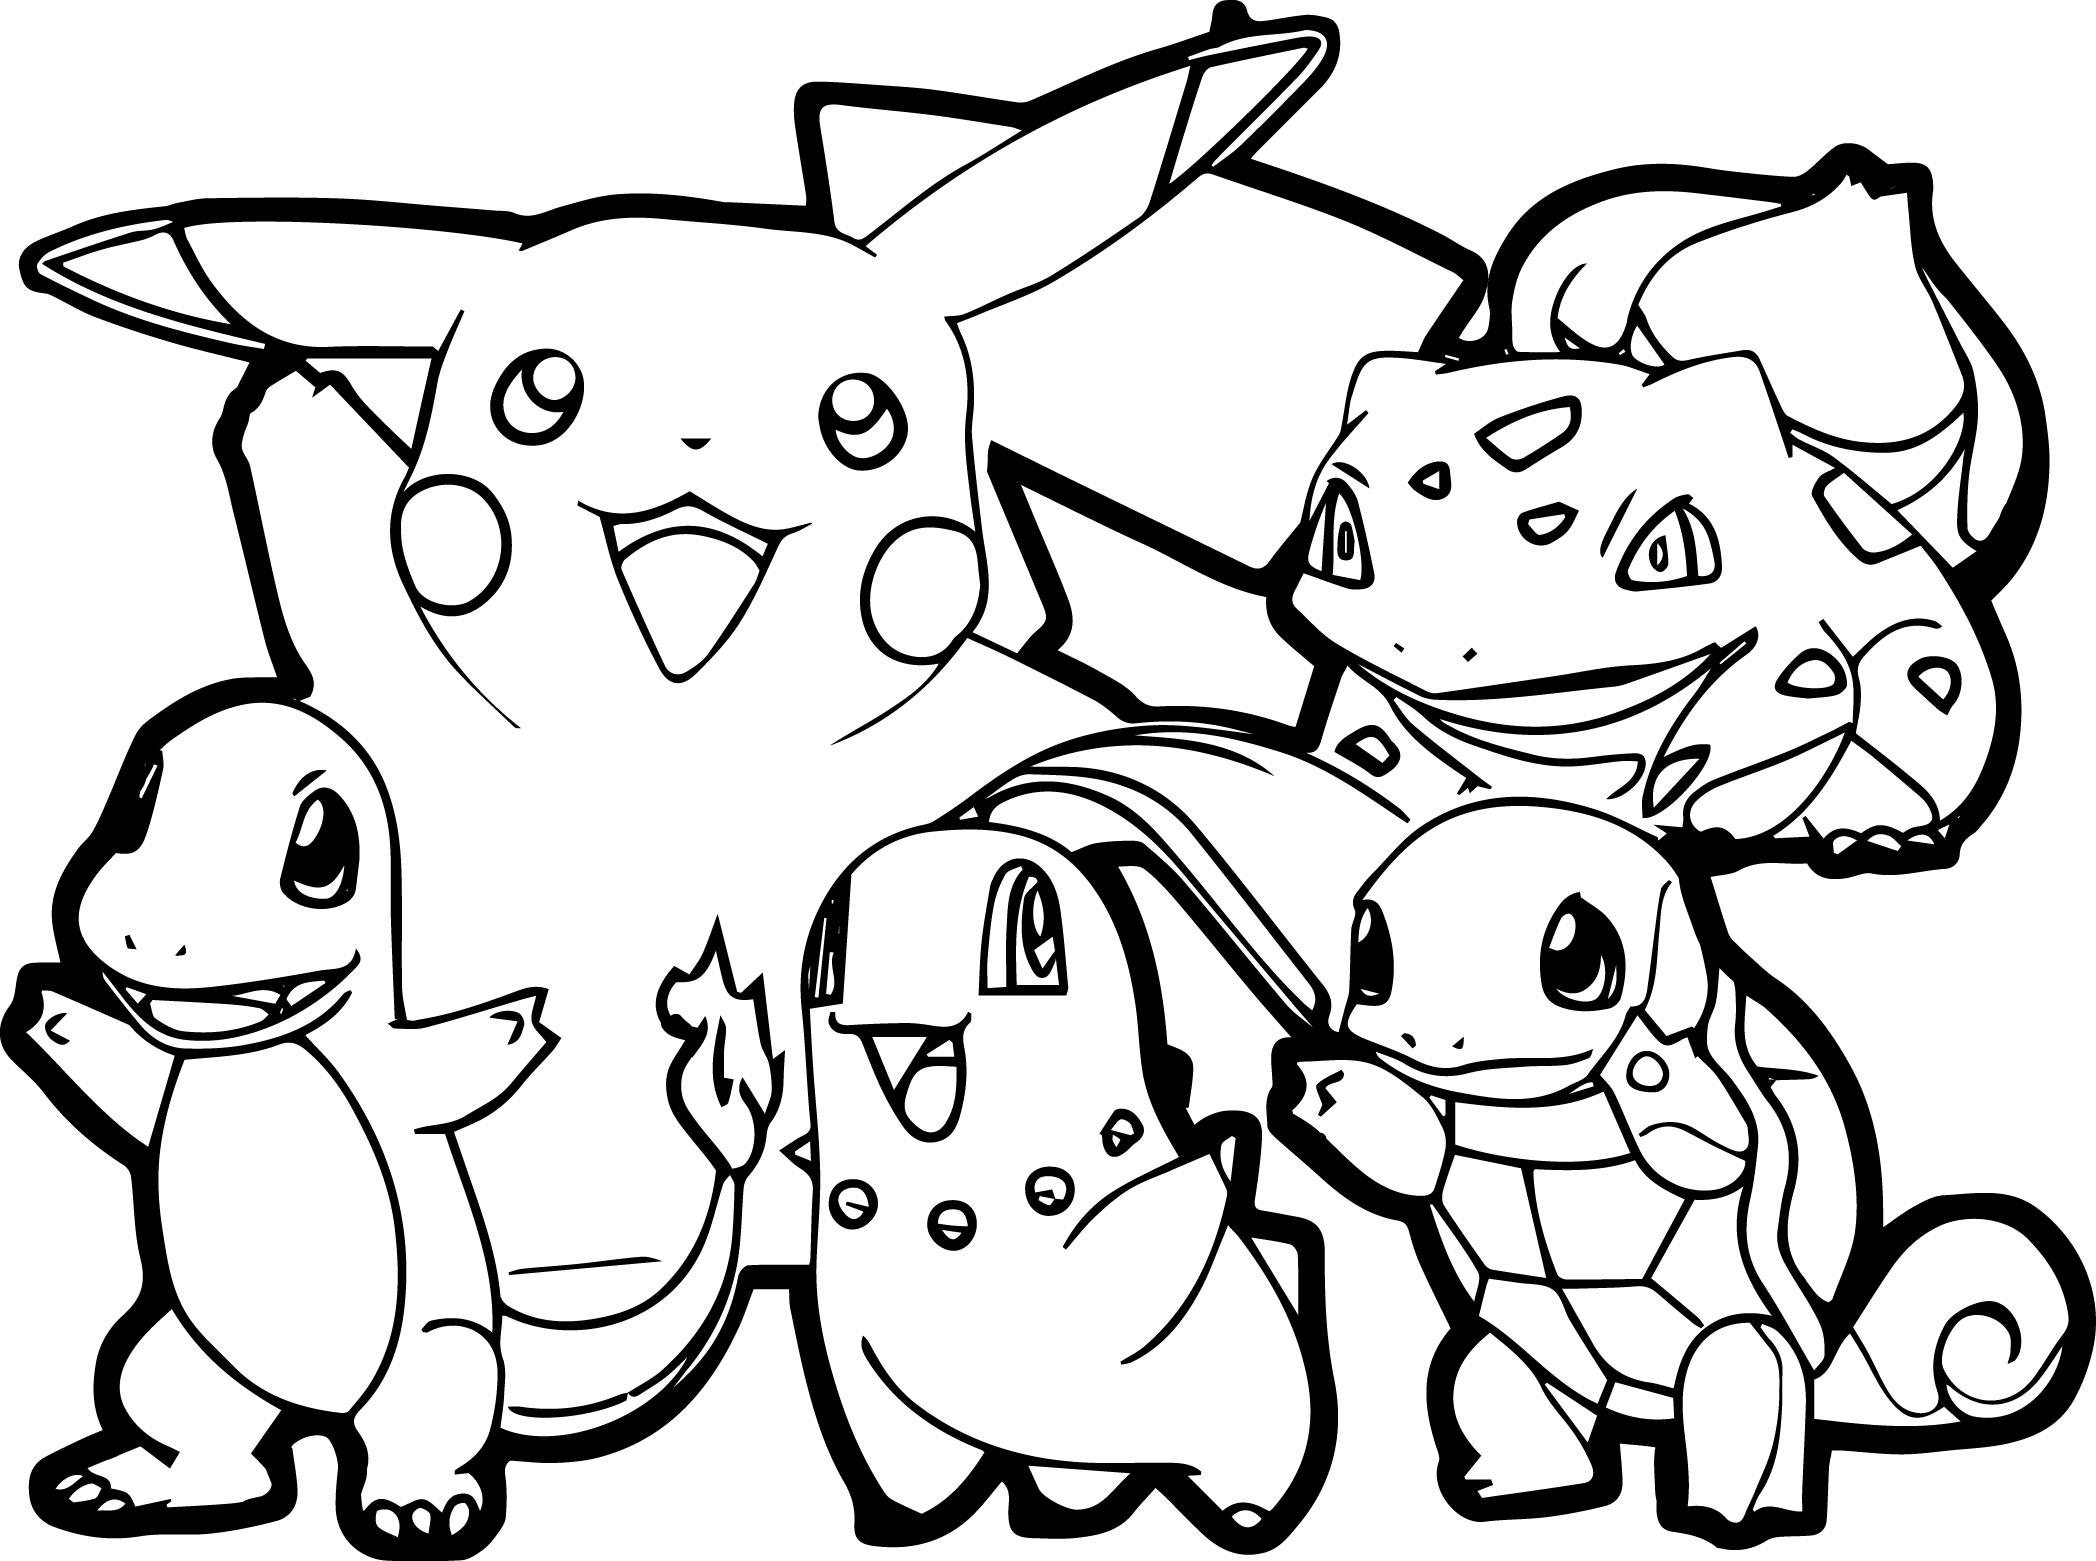 coloring sheet pokemon pokemon coloring pages join your favorite pokemon on an sheet coloring pokemon